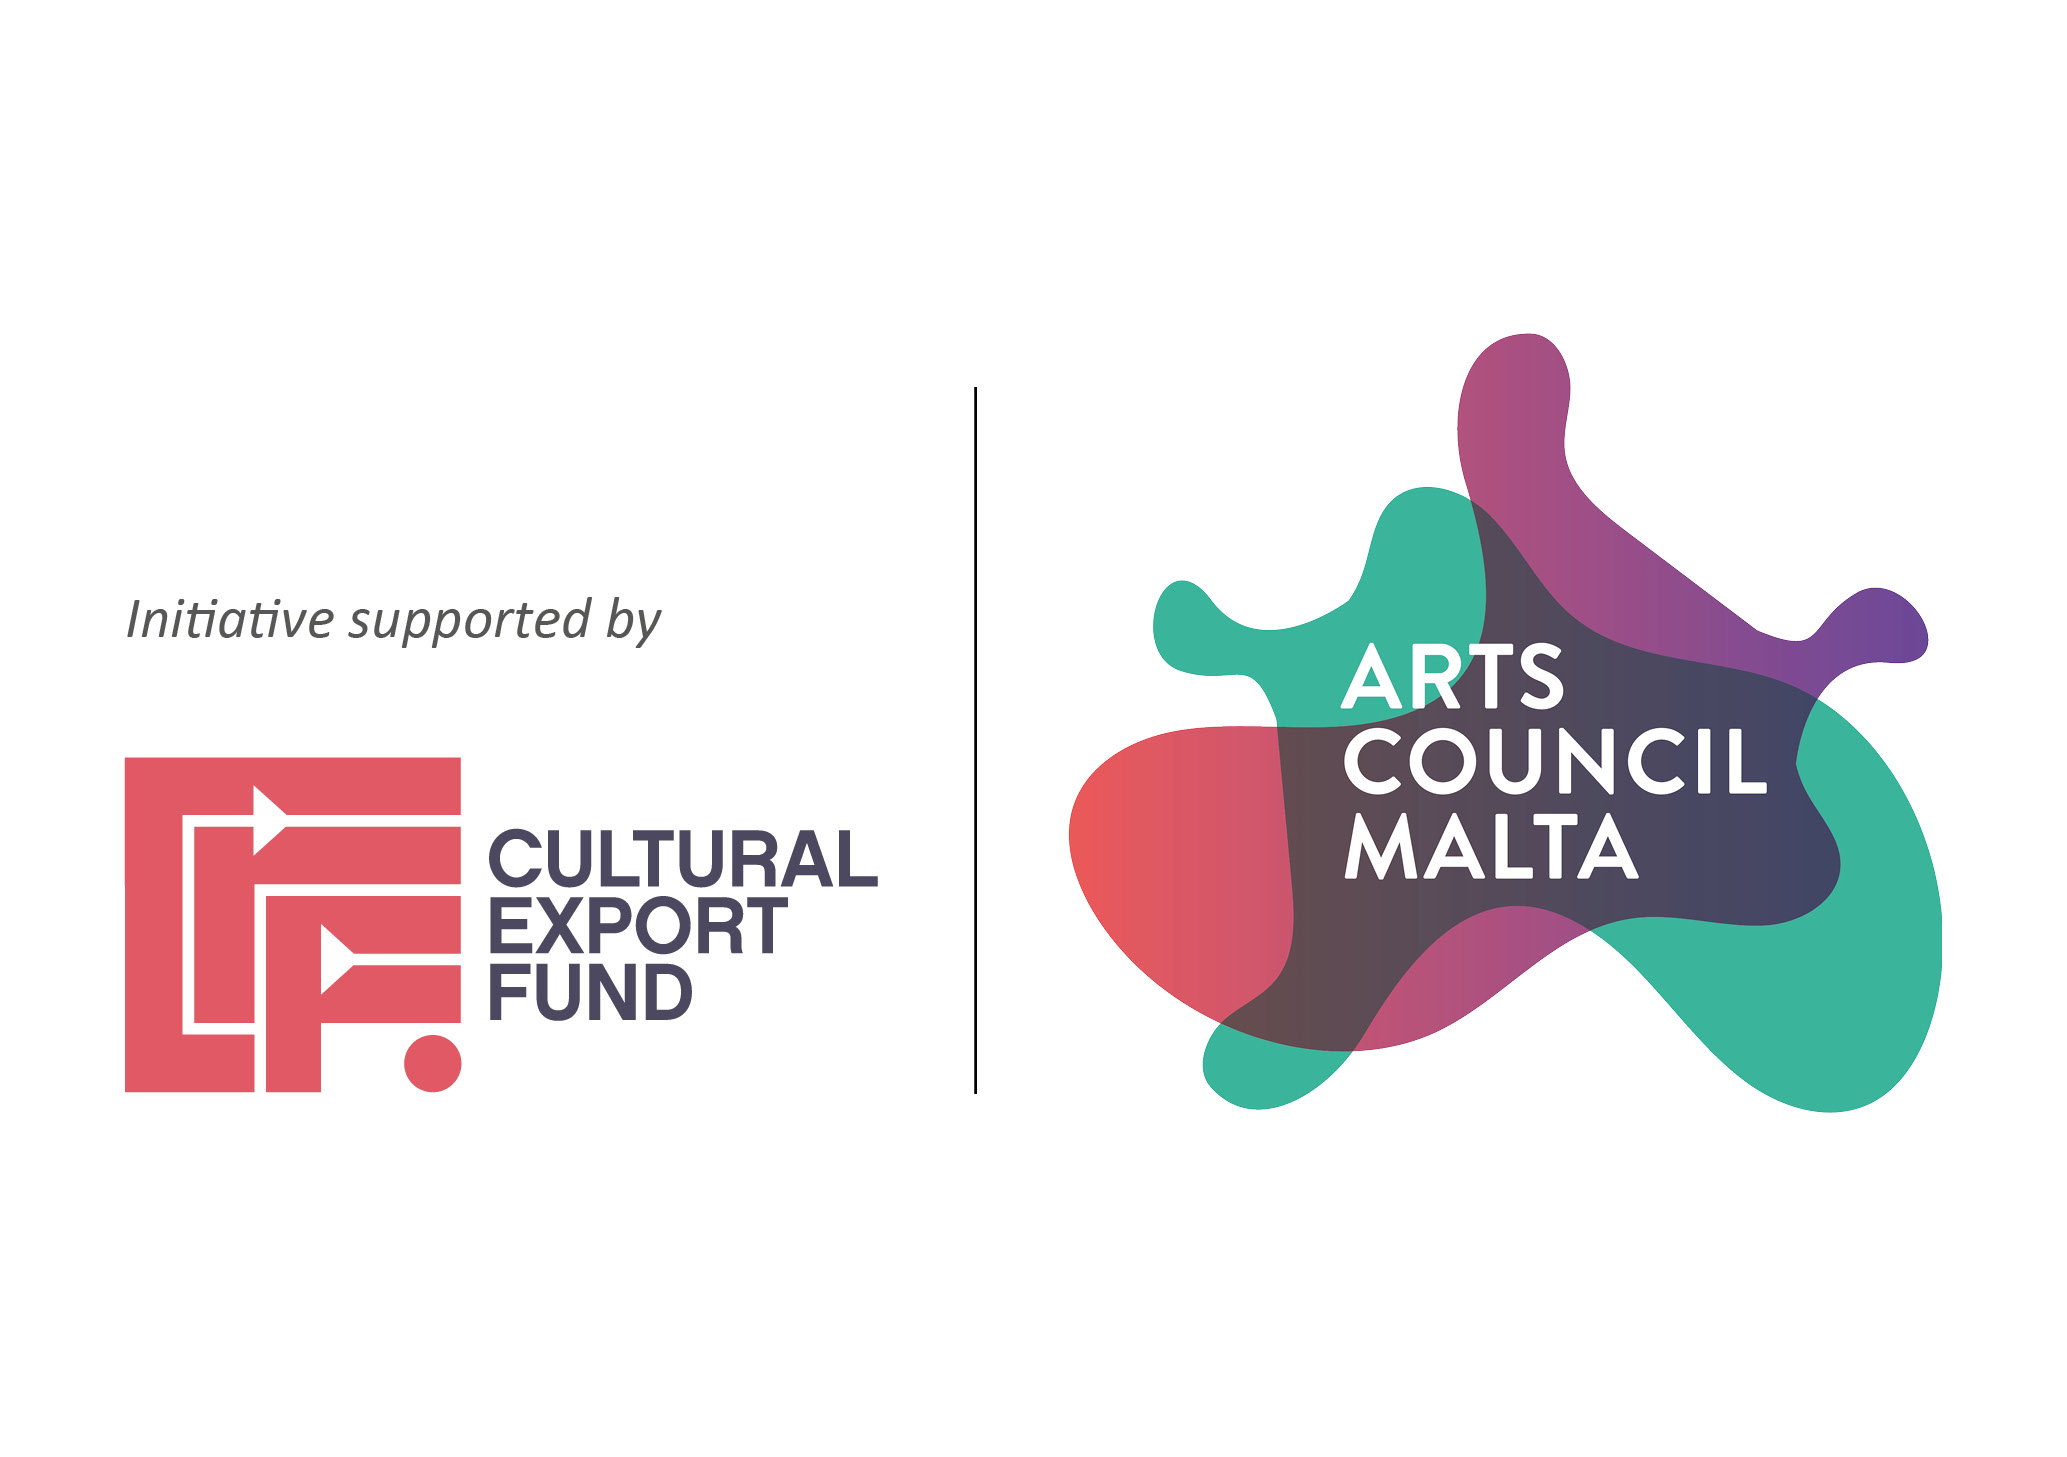 This project is supported by Arts Council Malta